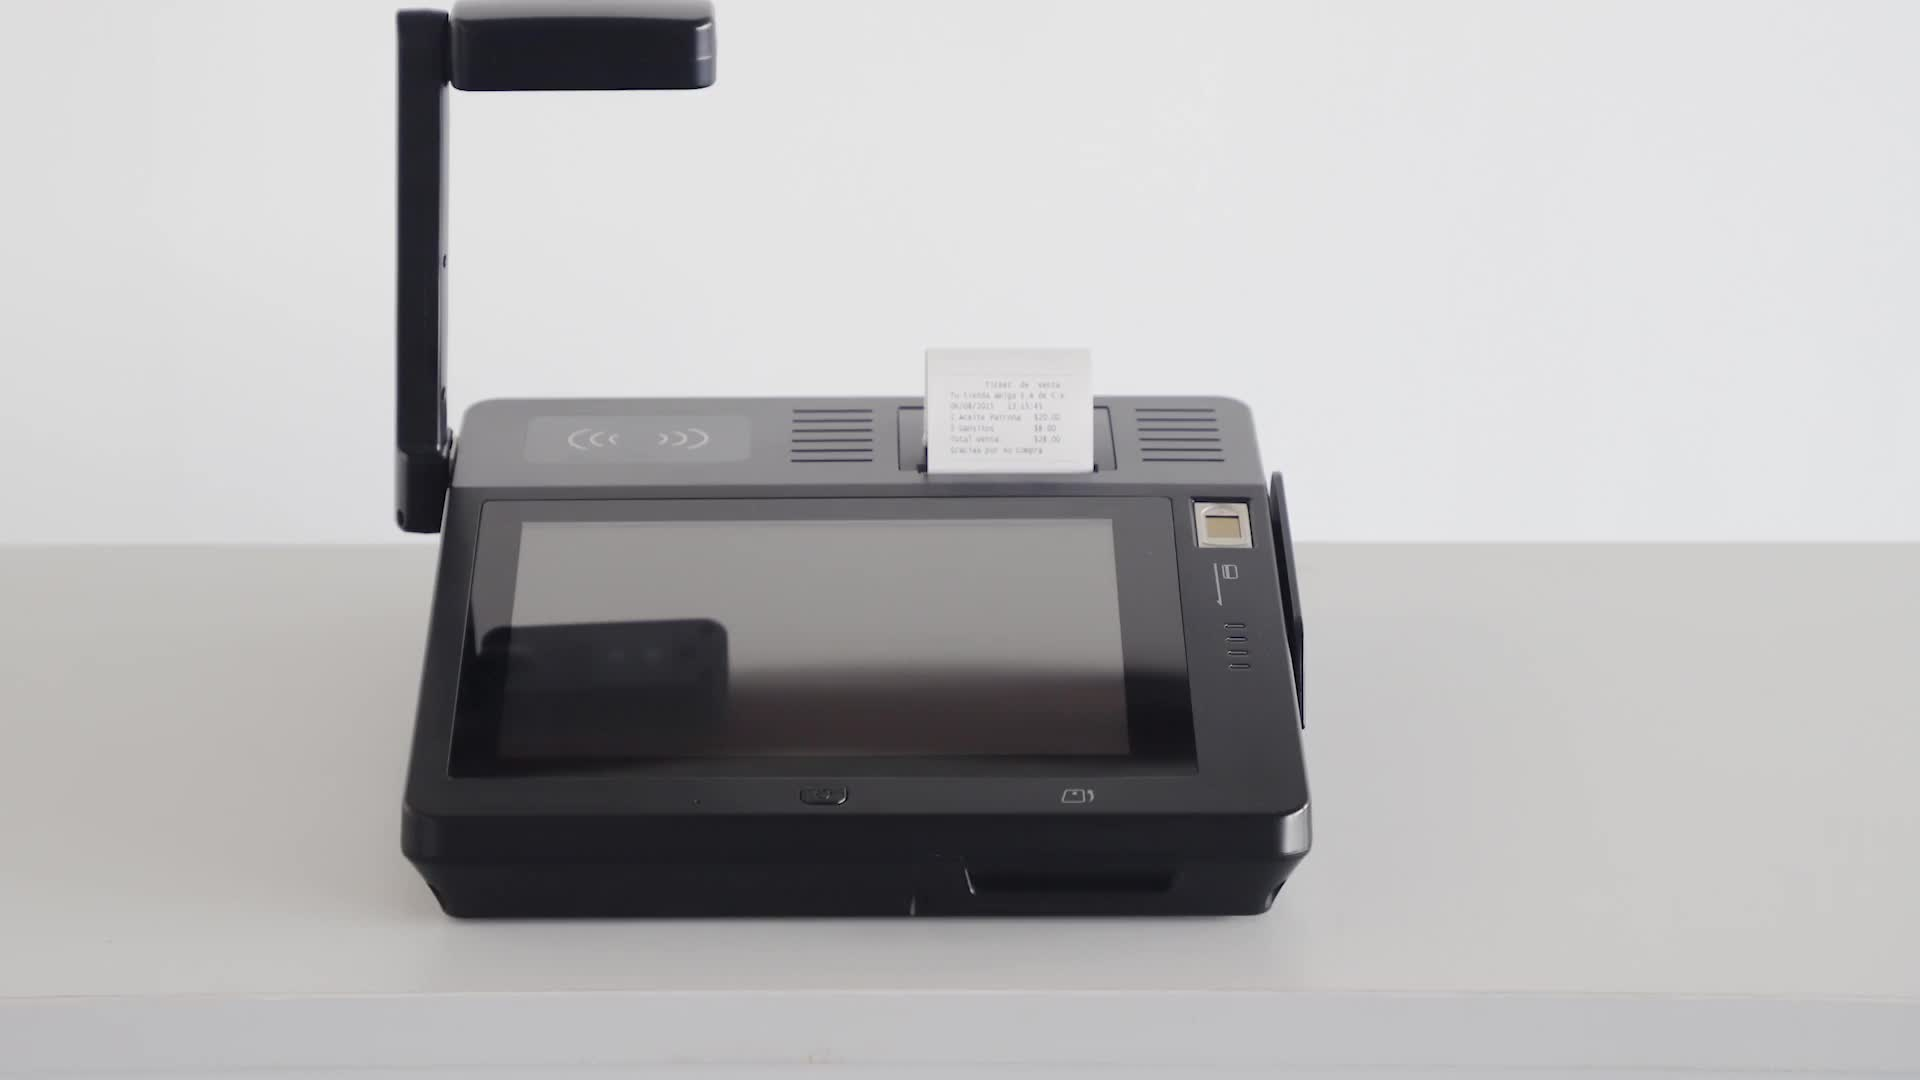 best double touch screen dual display android point of sale pos system cash register machine terminal device